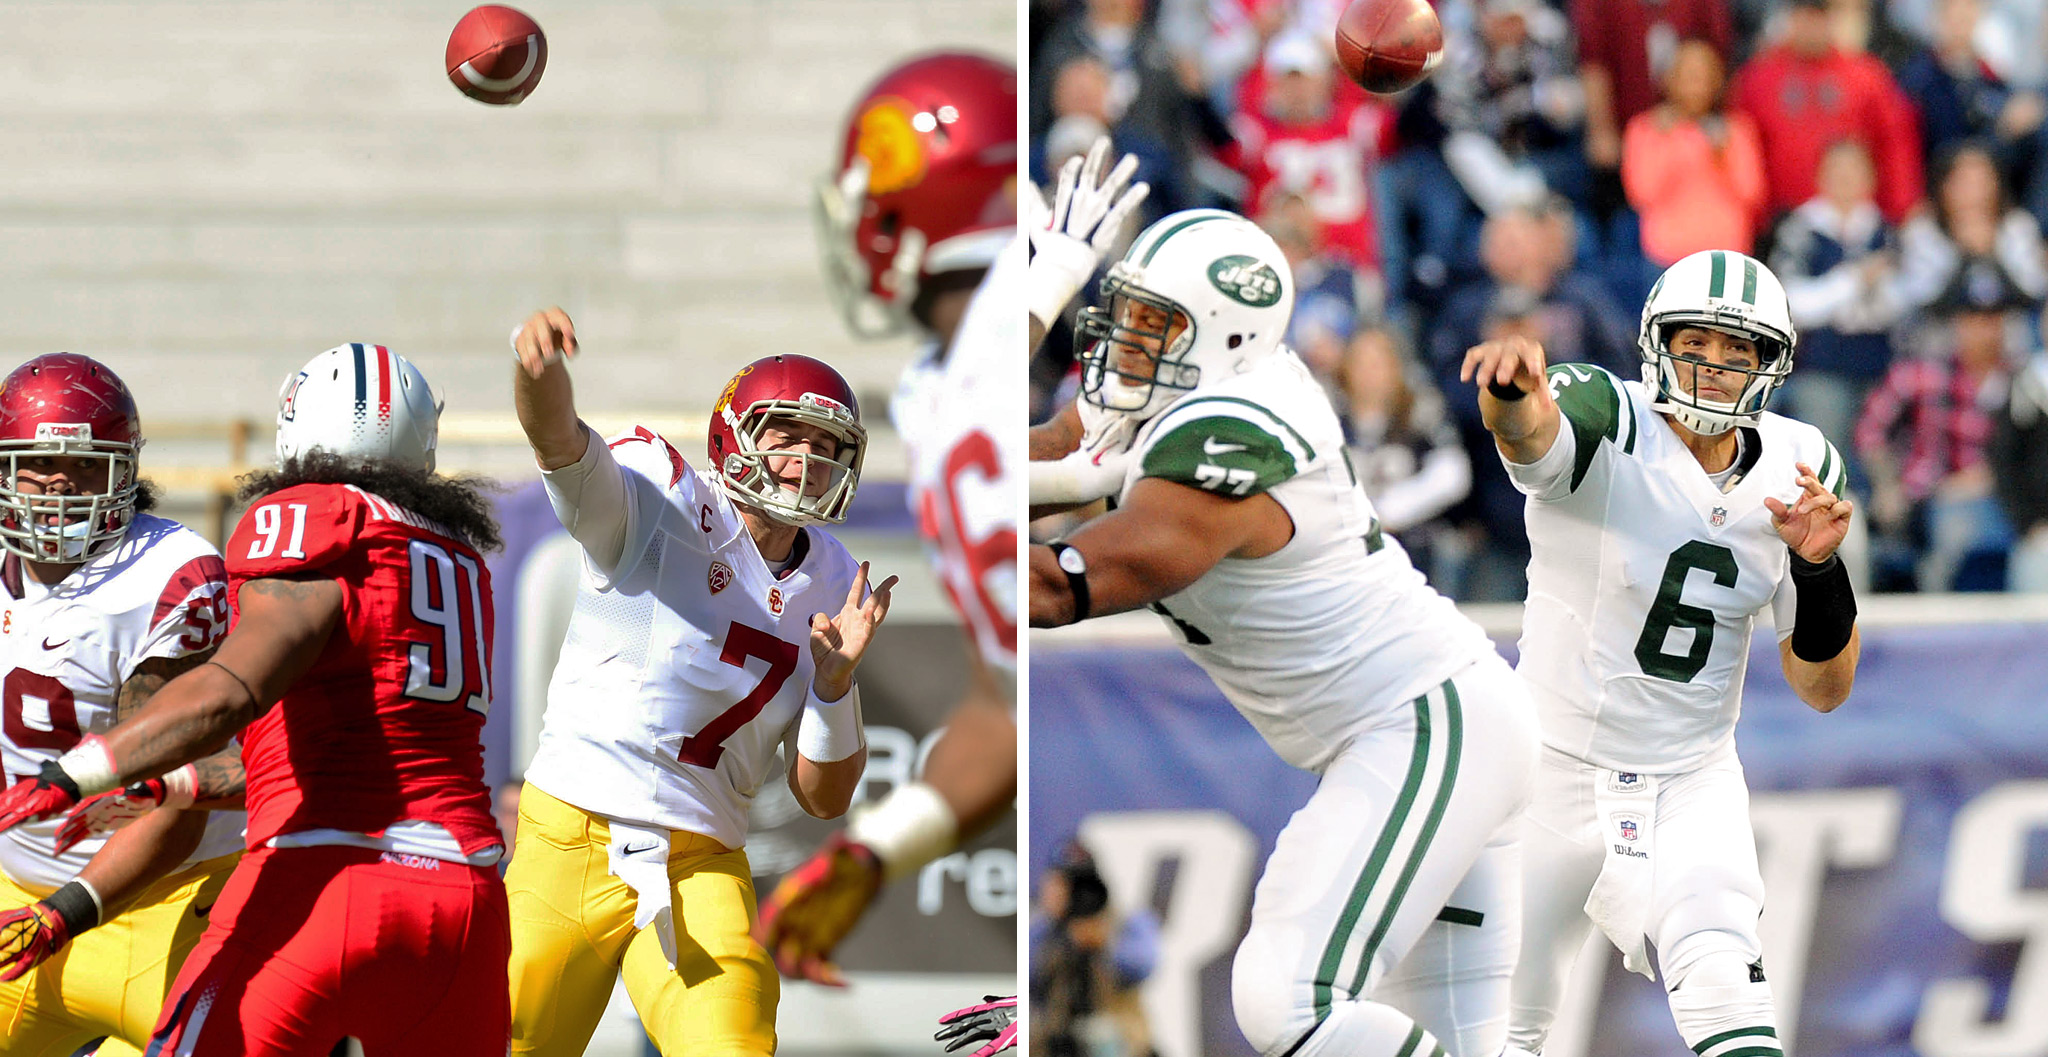 Matt Barkley, USC/Mark Sanchez, NY Jets